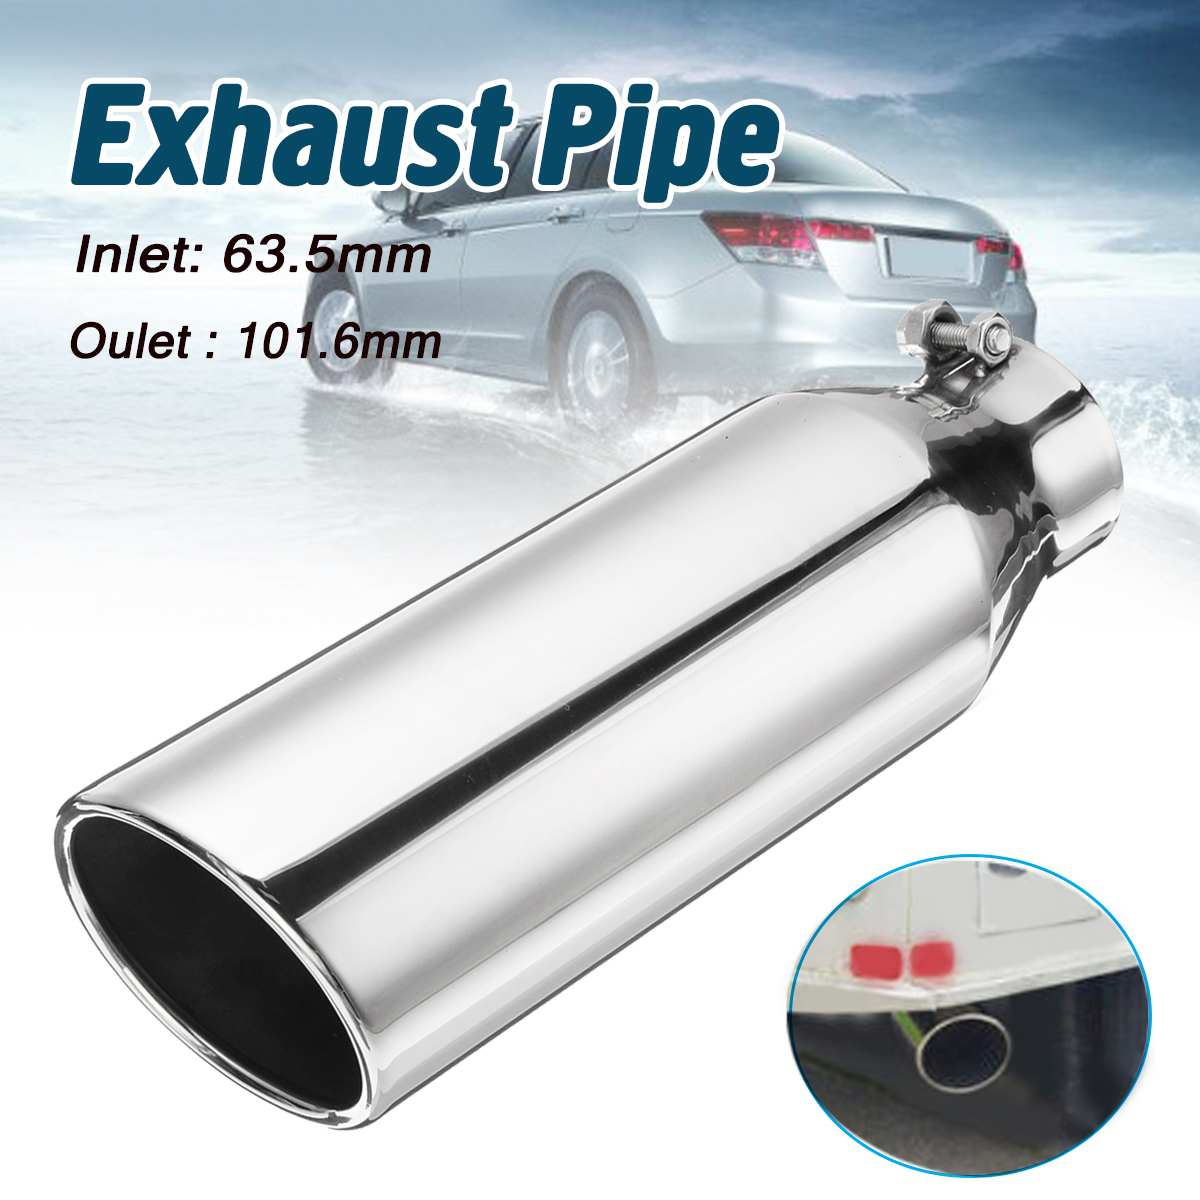 30mm Stainless Steel Bolt On Diesel Exhaust Tip 2.5 Inch Inlet 4 Inch Outlet Chrome Tailpipe Exhaust Tip30mm Stainless Steel Bolt On Diesel Exhaust Tip 2.5 Inch Inlet 4 Inch Outlet Chrome Tailpipe Exhaust Tip